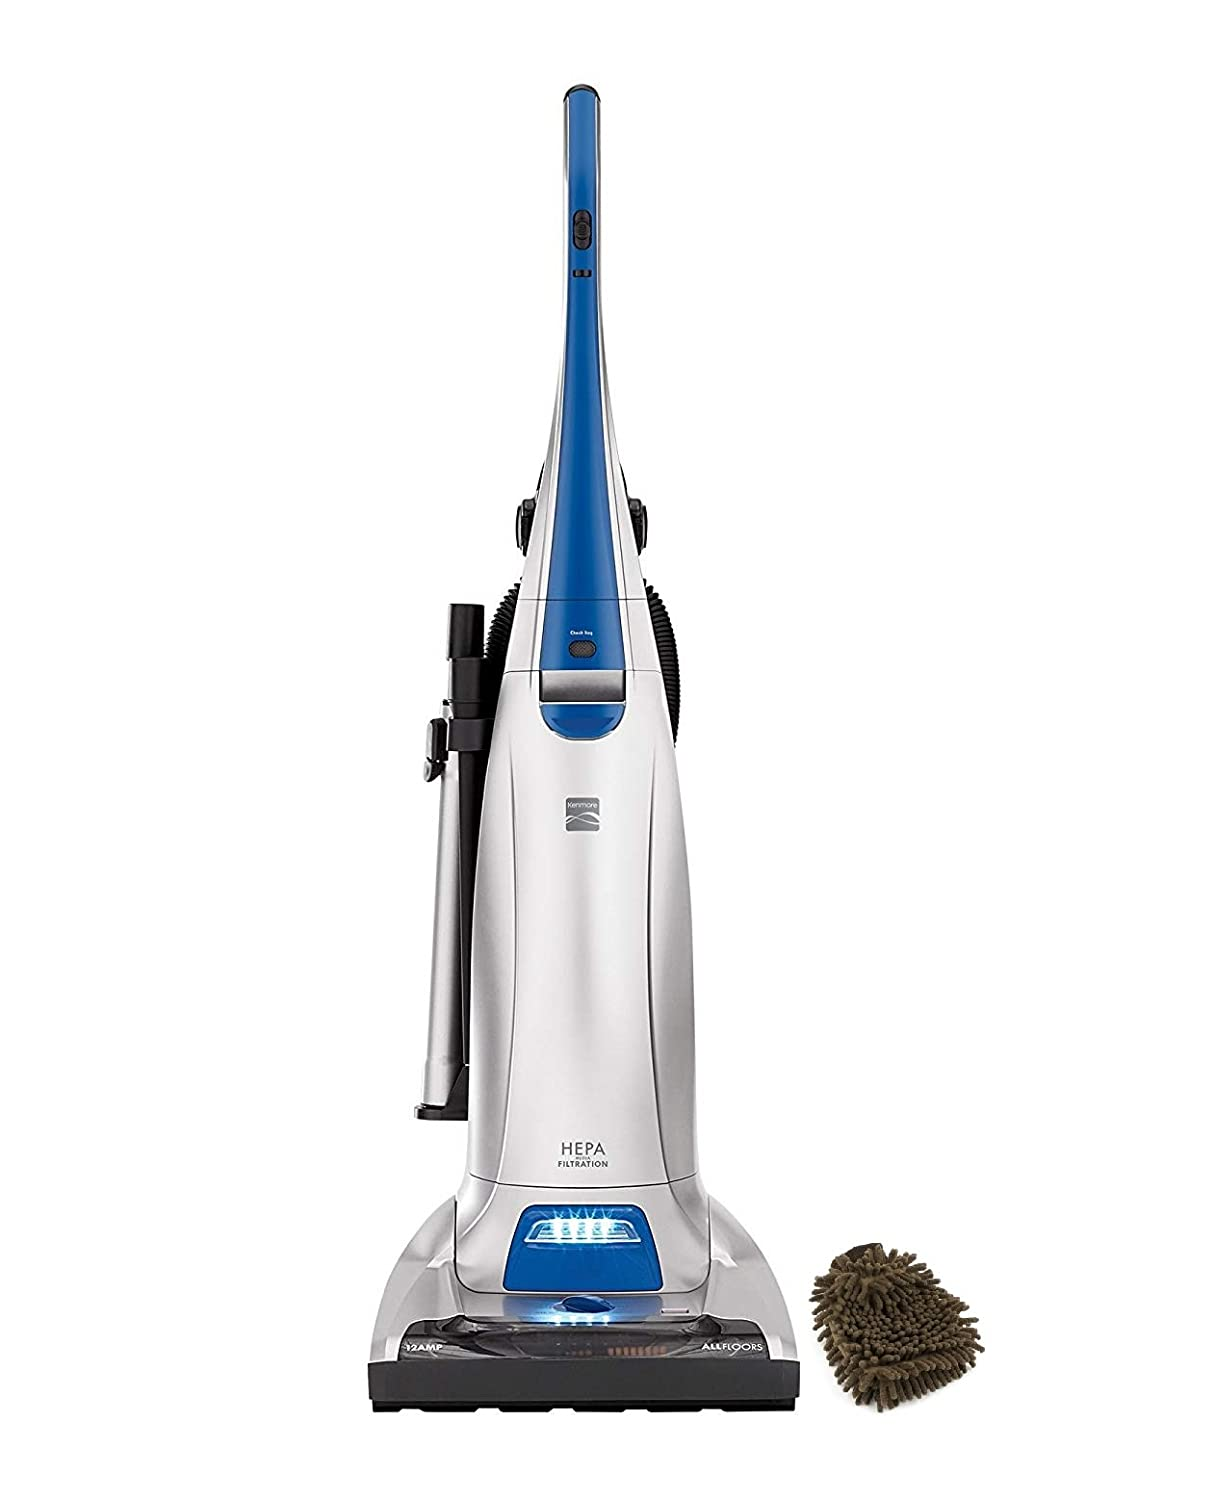 Kenmore 31140 Bags Filter, Pet and Allergy Friendly, Upright Vacuum Cleaner in Blue Silver (Complete Set), with Bonus Premium Microfiber Cleaner Bundle